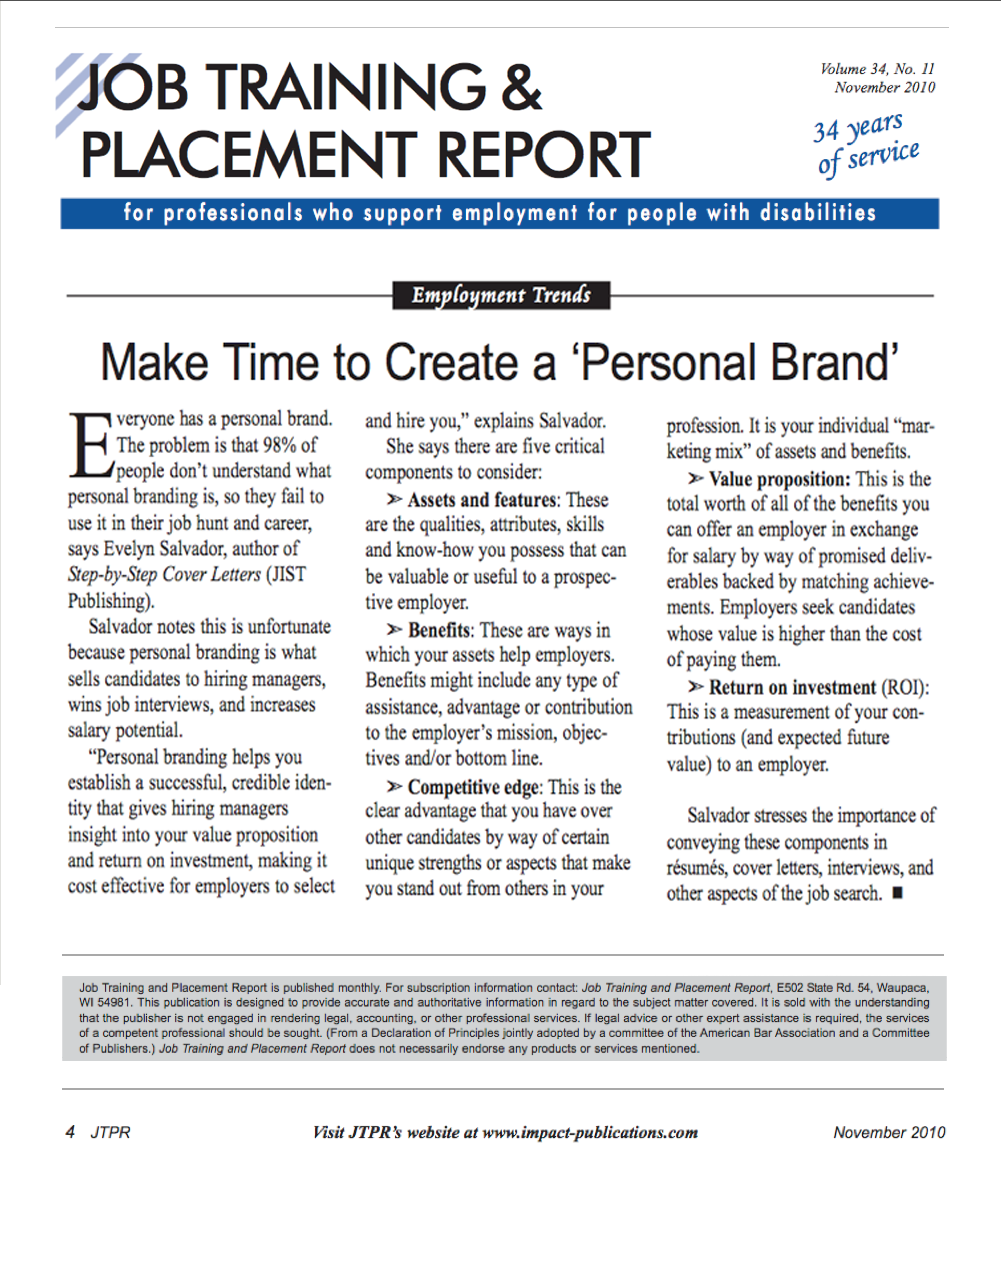 job training and placement report-create a personal brand.png